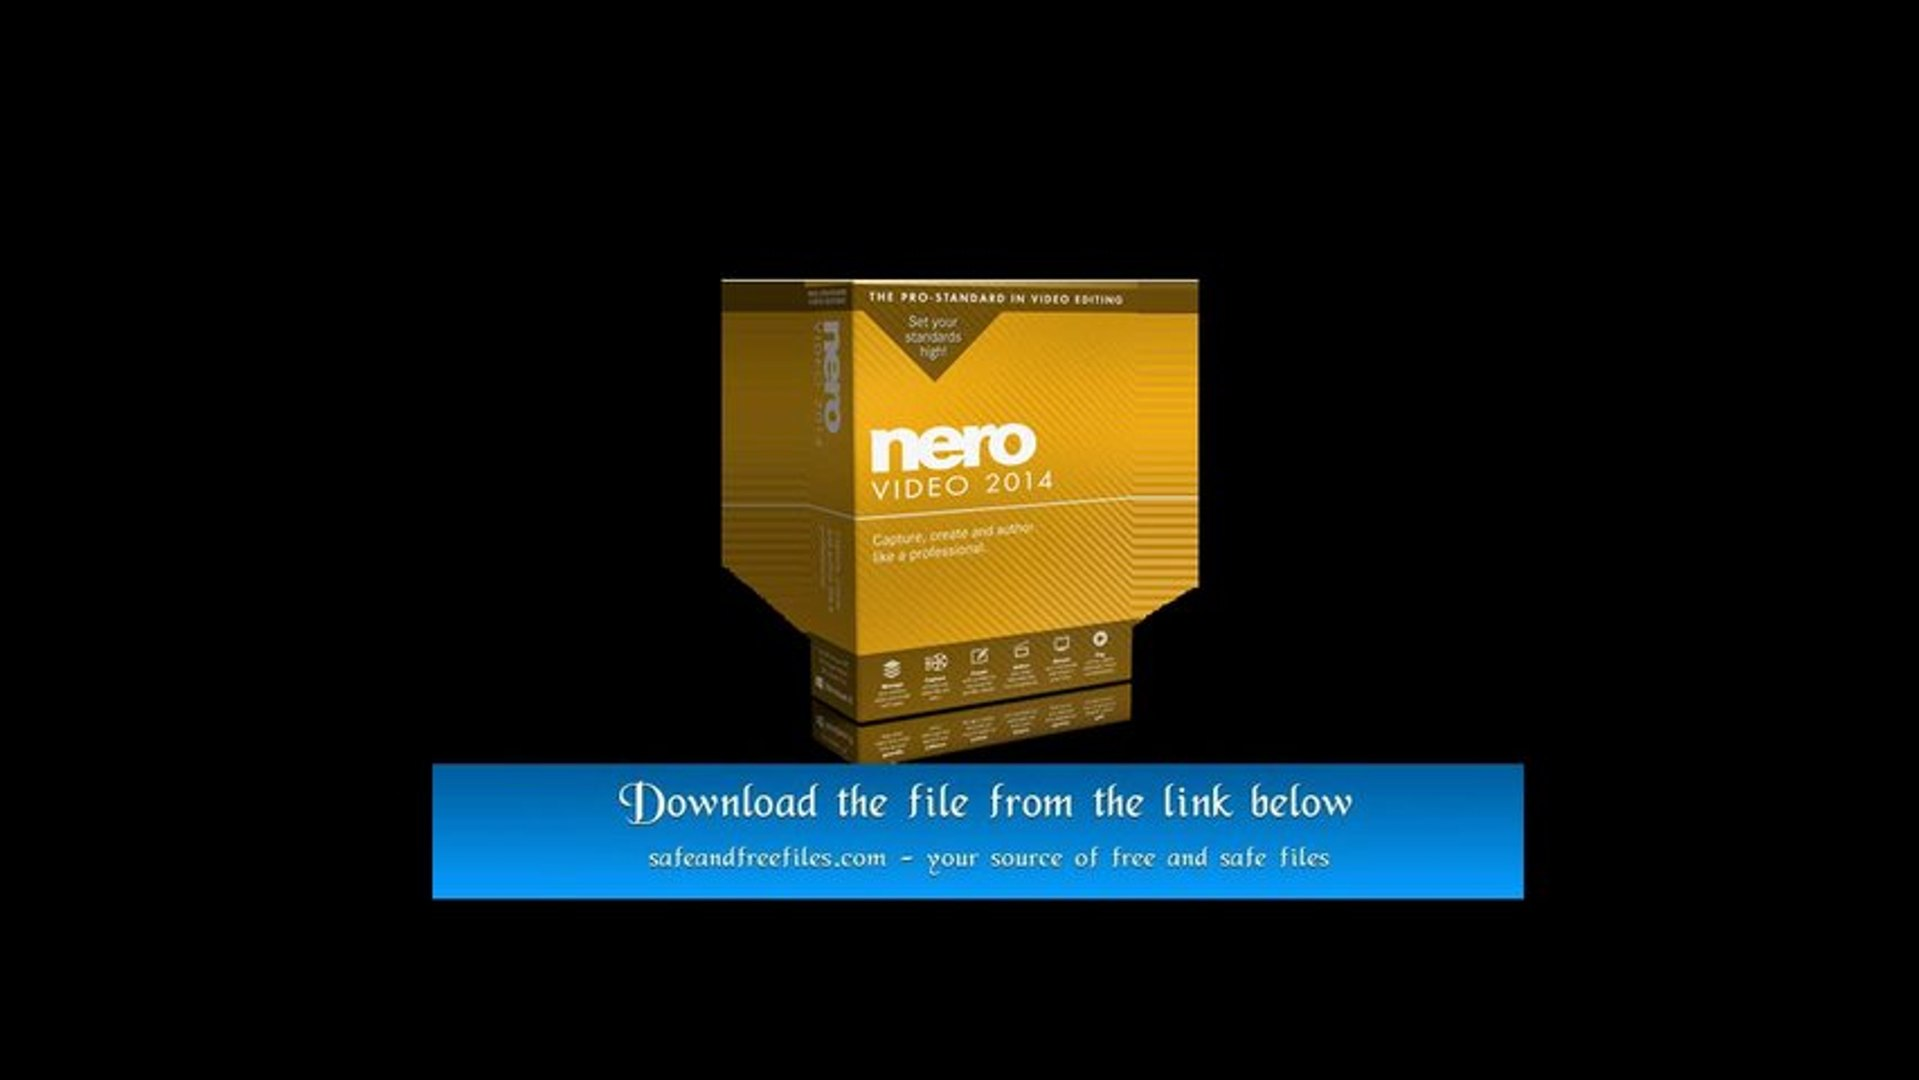 Nero Video 2014 V 15.0 Full Download with Crack For Windows and MAC